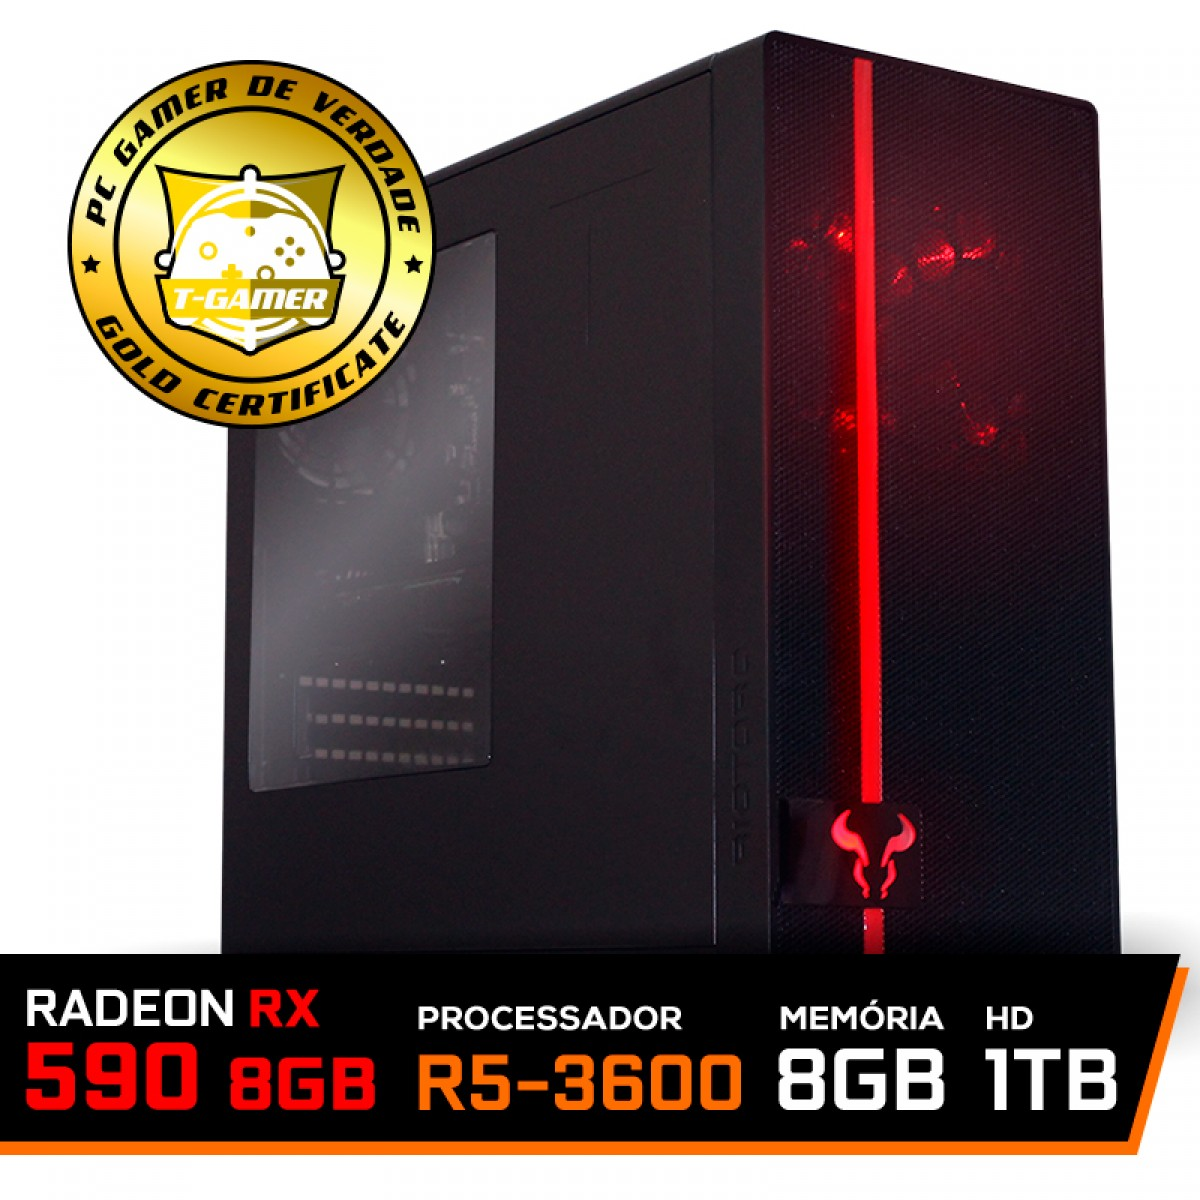 Pc Gamer Super T-Commander Lvl-3 AMD Ryzen 5 3600 / Radeon RX 590 8GB / DDR4 8GB / HD 1TB / 600W